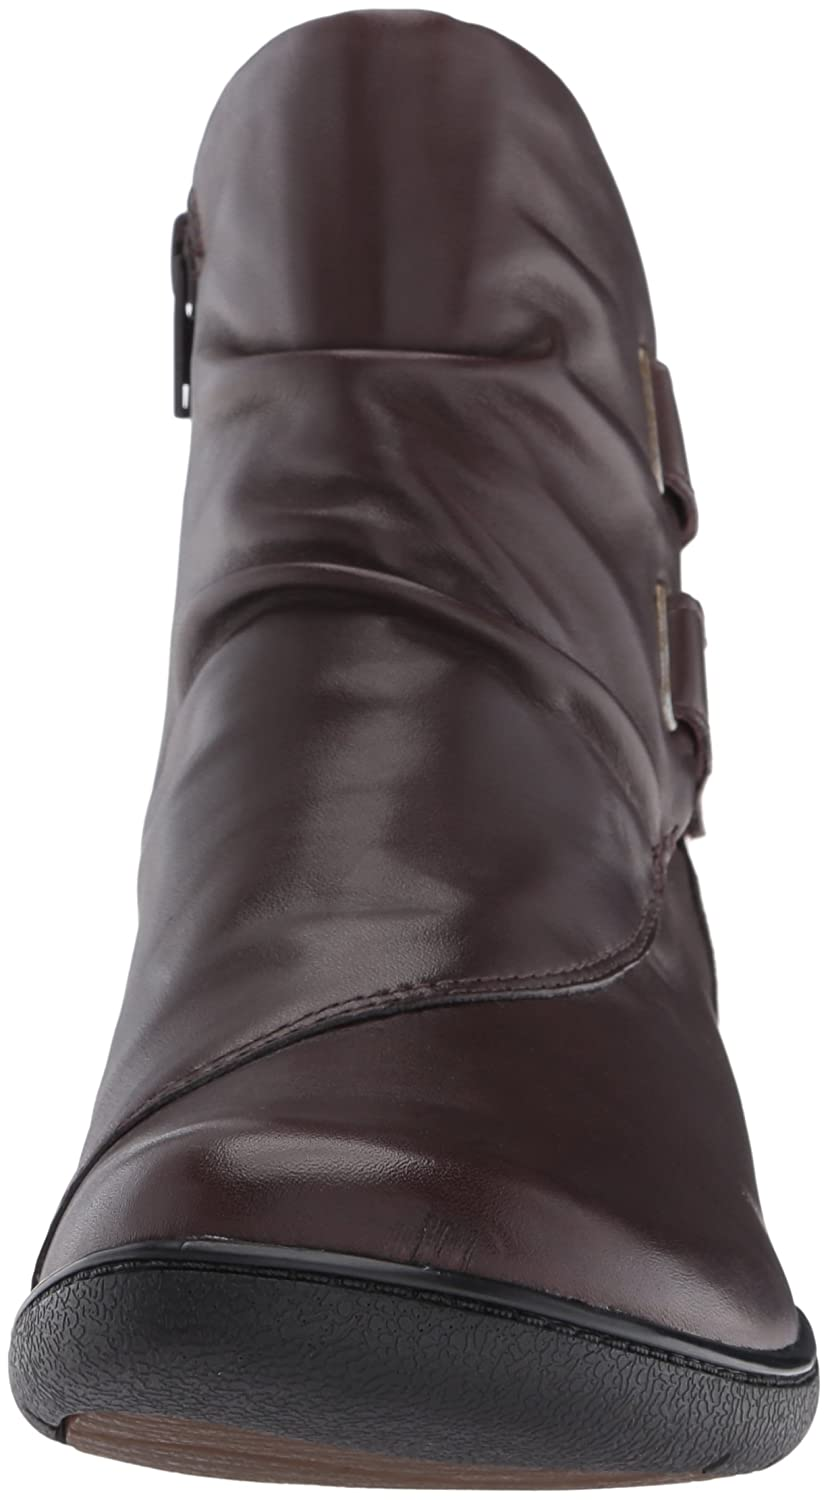 CLARKS Women's Kearns Burst Boot B019JTBMOA 7 B(M) US|Dark Brown